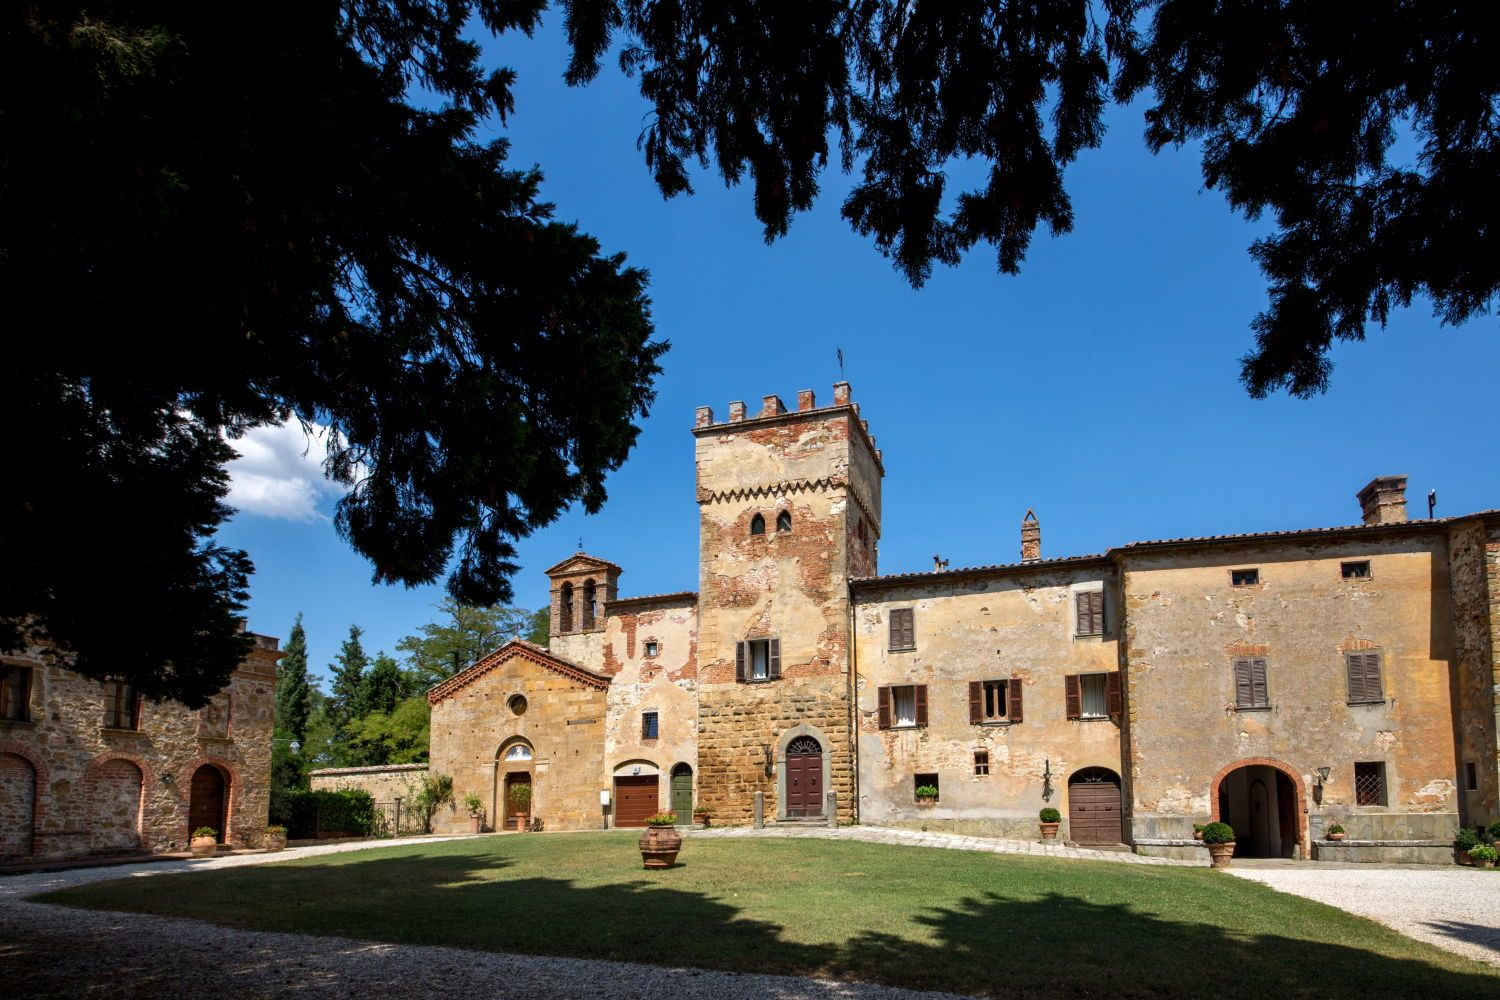 AN UNEXPECTED SURPRISE NEAR SIENA: A FAIRYTALE VENUE AMONG THE HILLS - http://www.paolocicognani.com/%e2%80%a8an-unexpected-surprise-near-siena-fairytale-venue-among-the-hills/